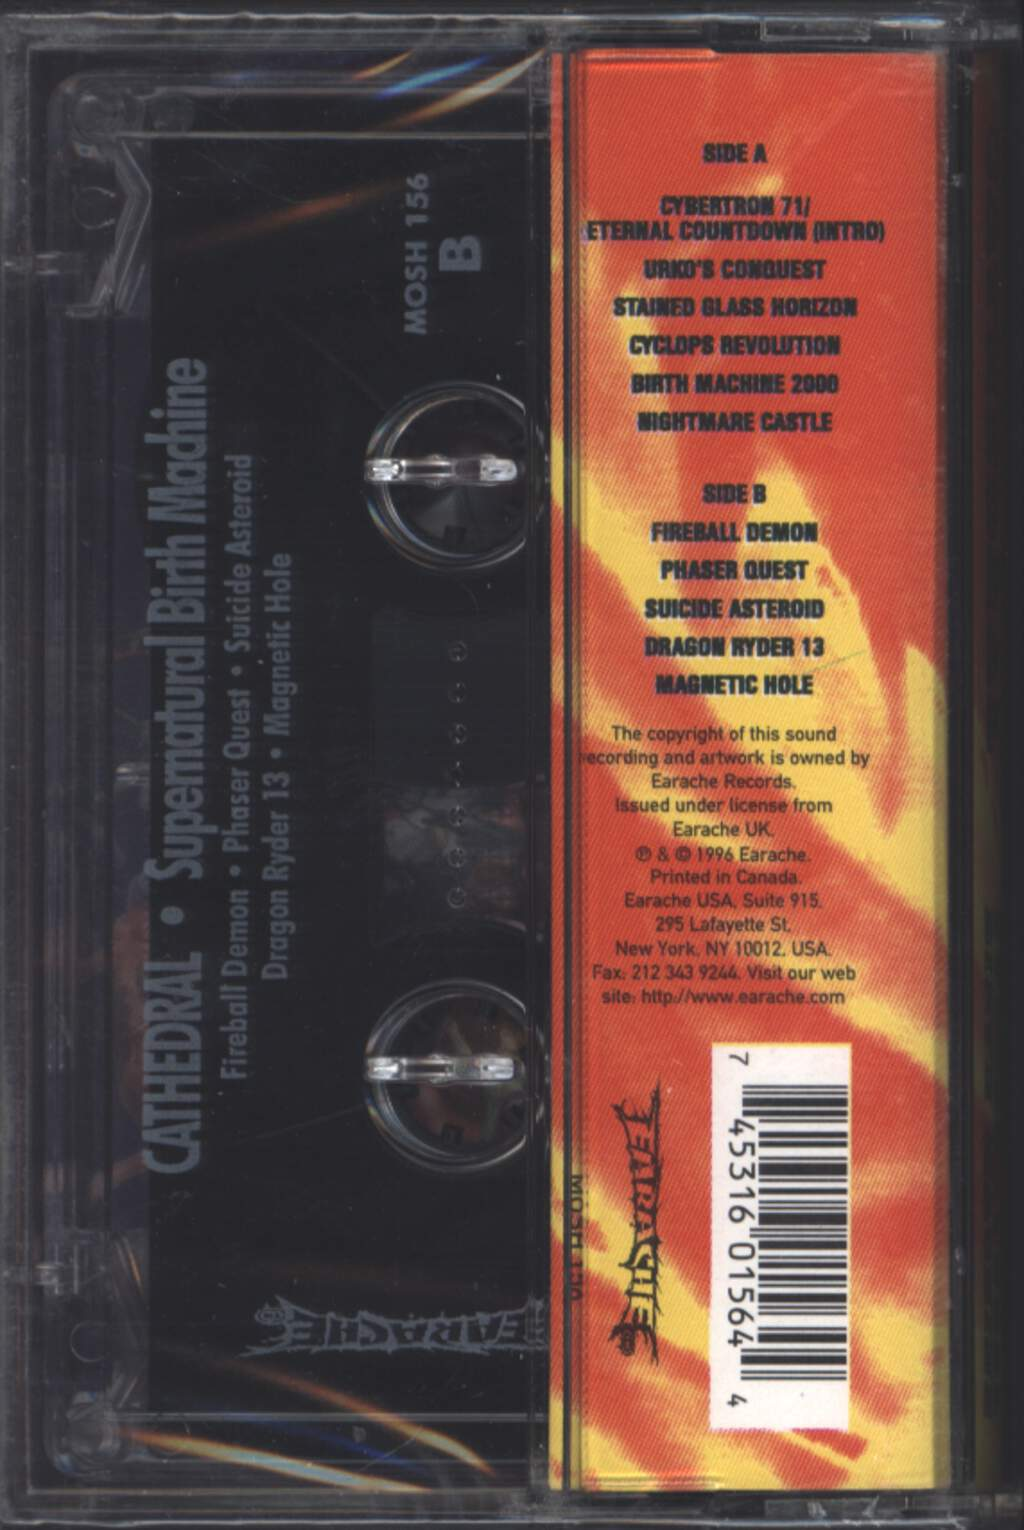 Cathedral: Supernatural Birth Machine, Compact Cassette